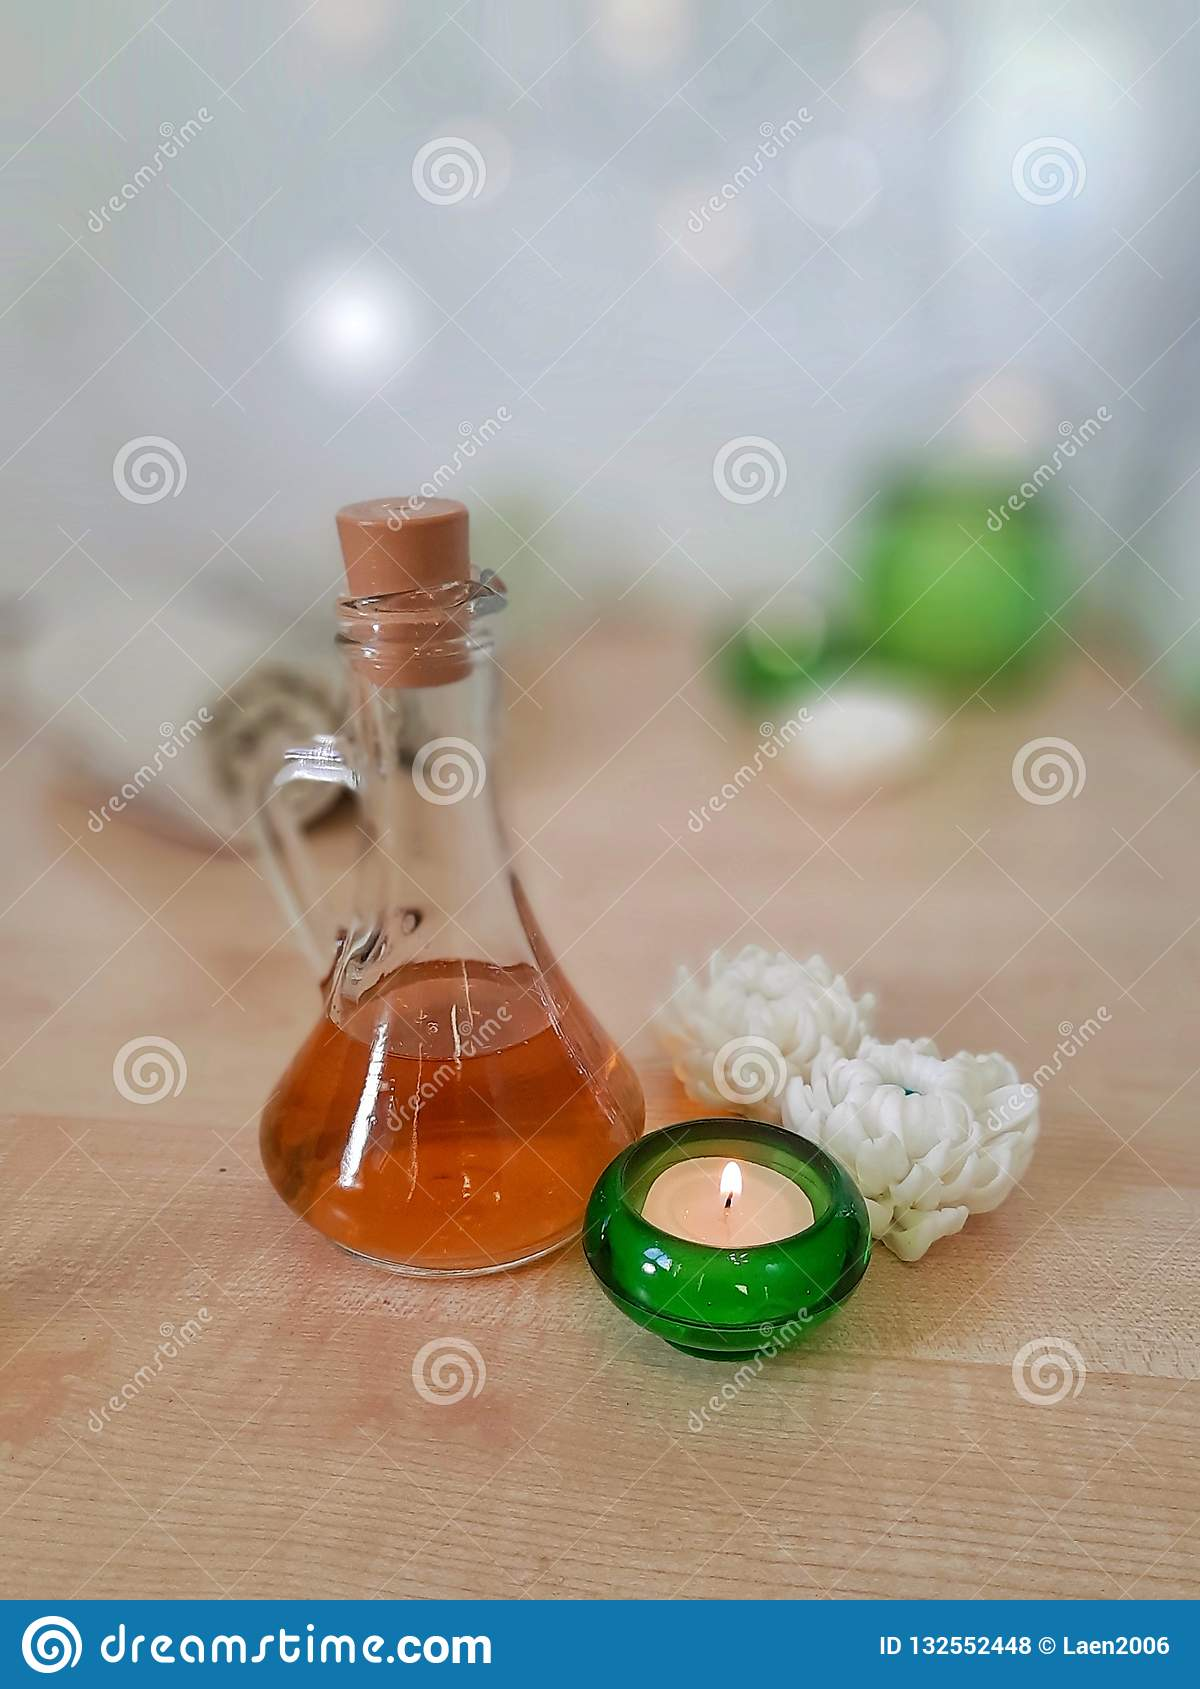 Spa aromatherapy concept. Towel, essential oil, handmade flower soap, burning candle in green glass on wooden table